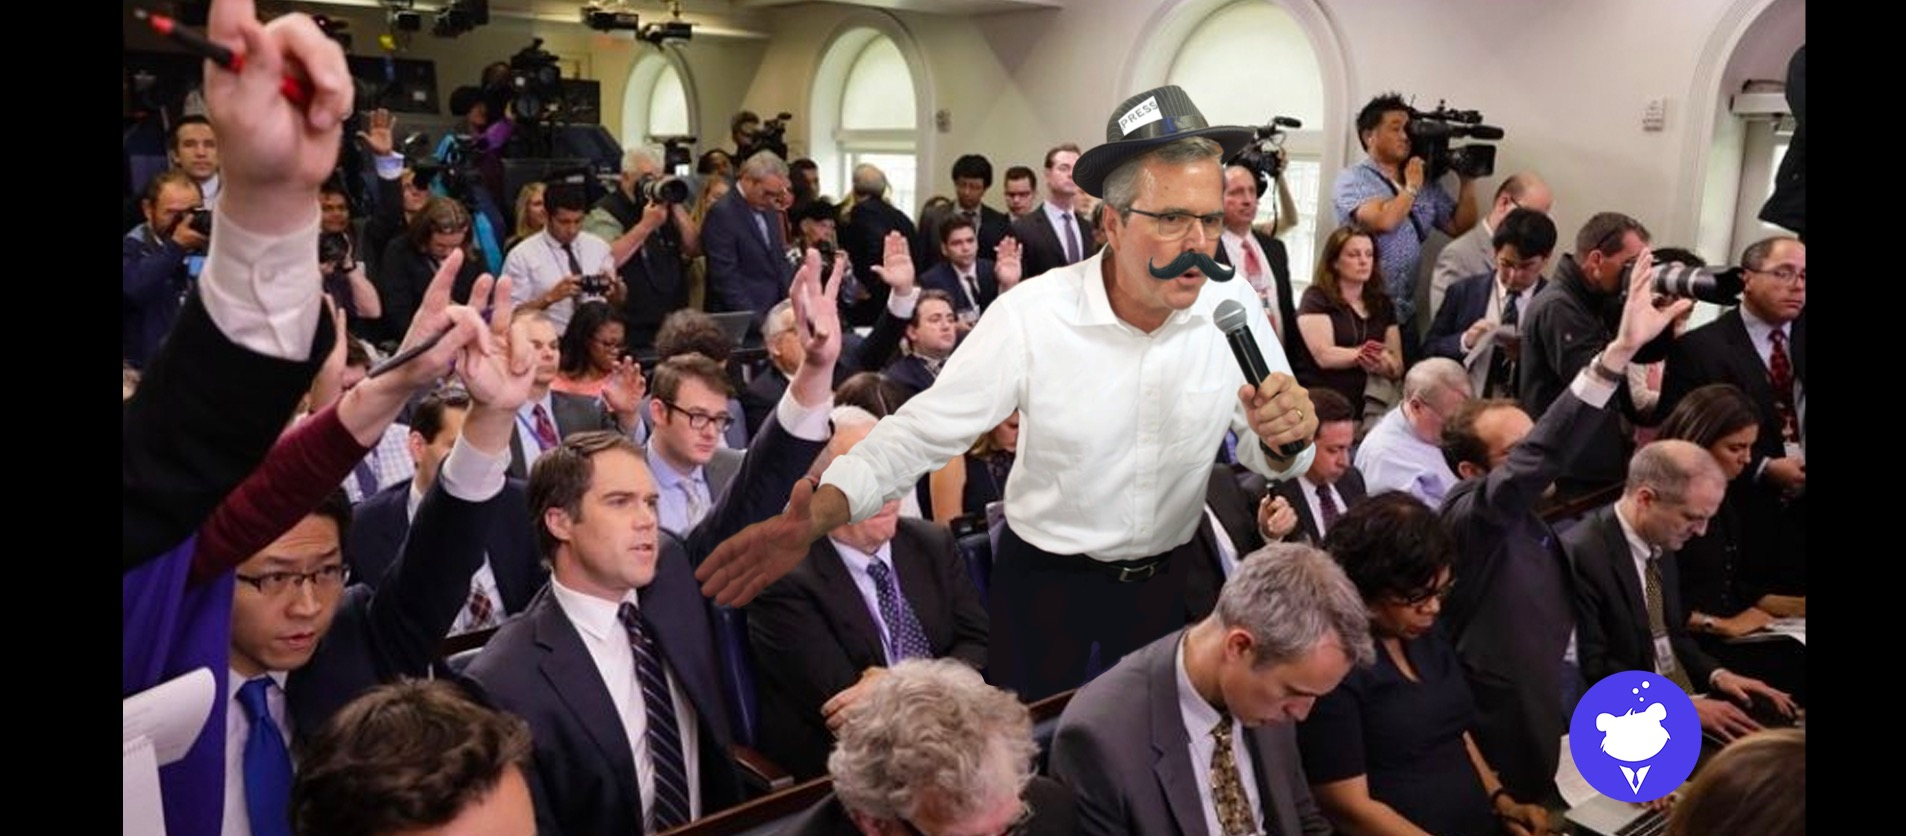 'This wouldn't have happened if Jeb Bush were in charge!' yells man at WH briefing looking oddly like Jeb Bush